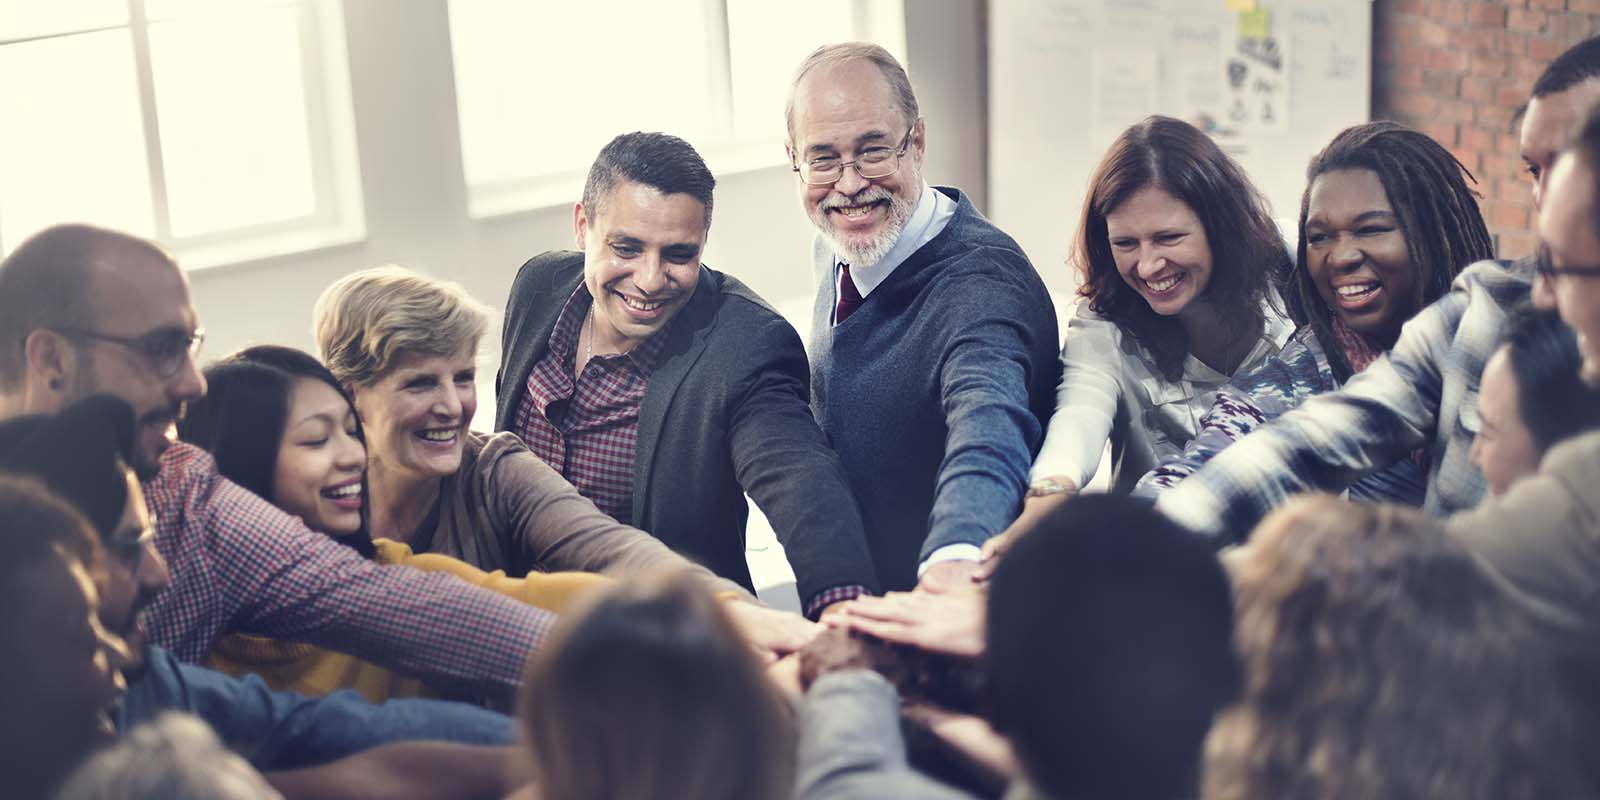 Engage your team with a purpose